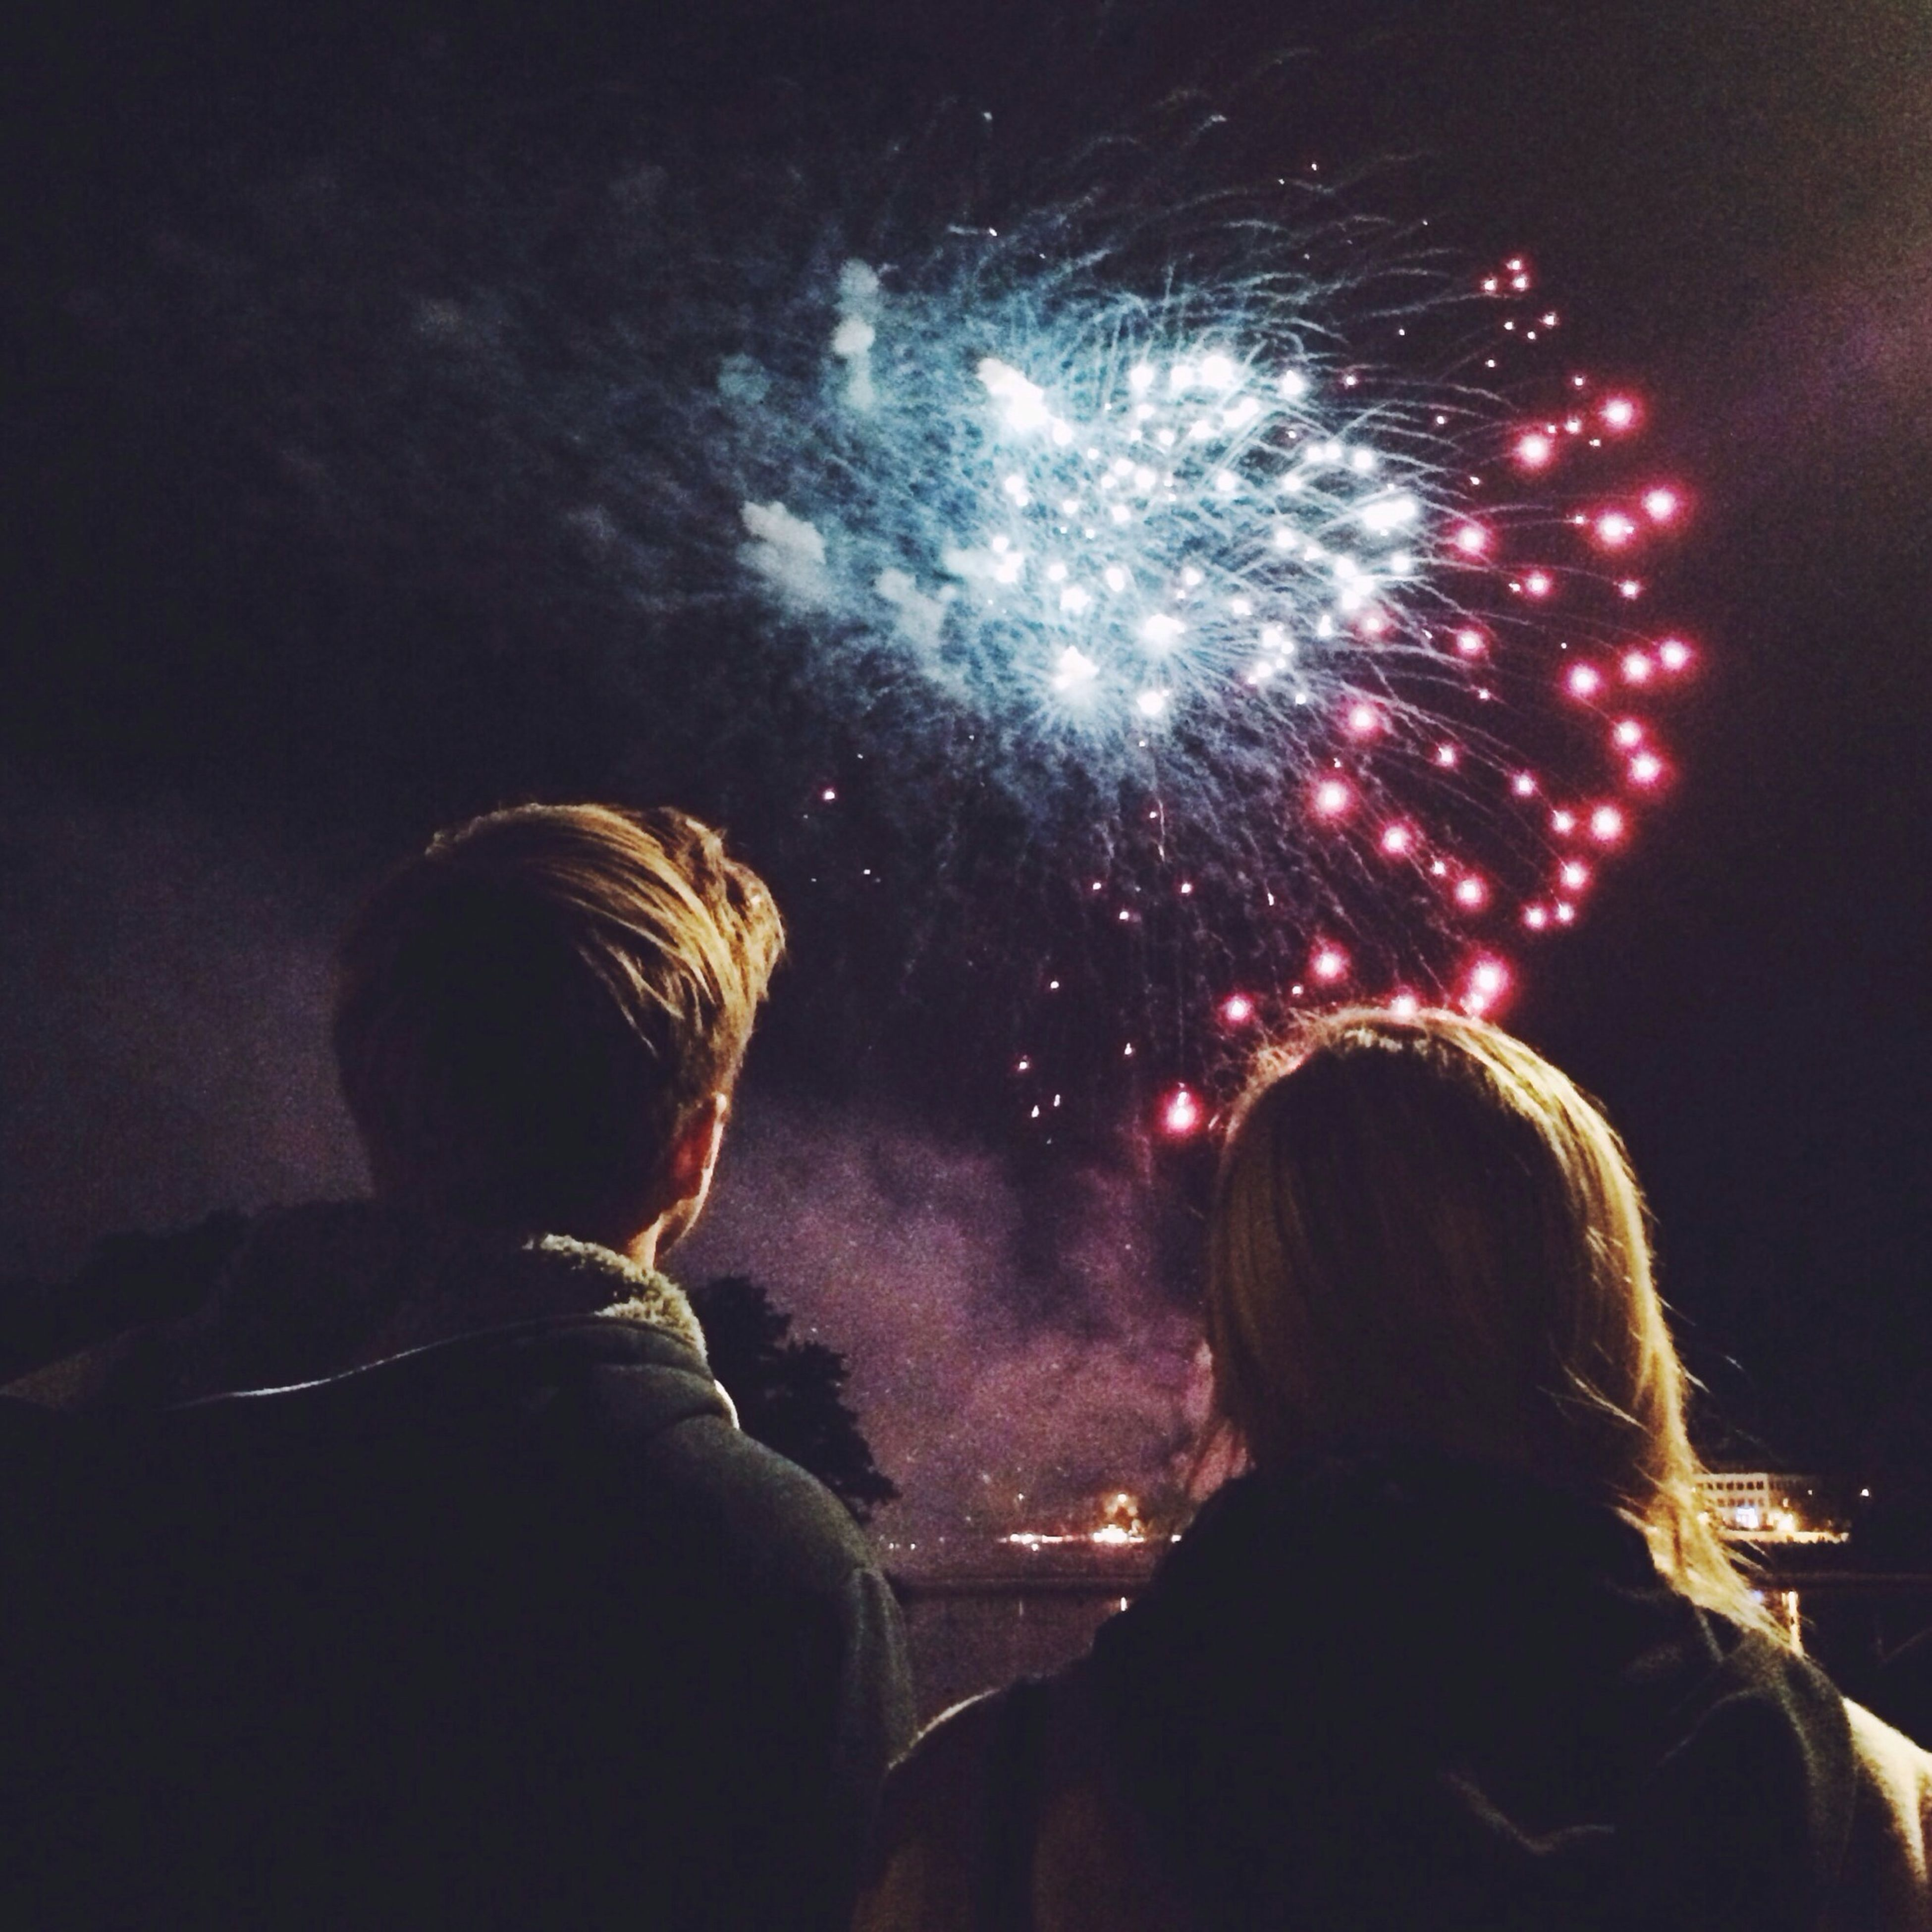 night, illuminated, lifestyles, leisure activity, arts culture and entertainment, celebration, rear view, men, firework display, person, headshot, sparks, event, motion, long exposure, exploding, glowing, firework - man made object